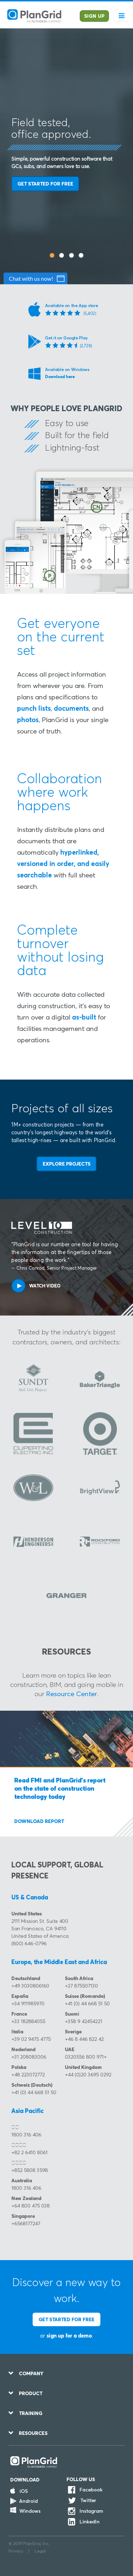 Example of Design for Science, Engineering & Technology, Mobile Landing Page by plangrid.com-V2 | Mobile Landing Page Design